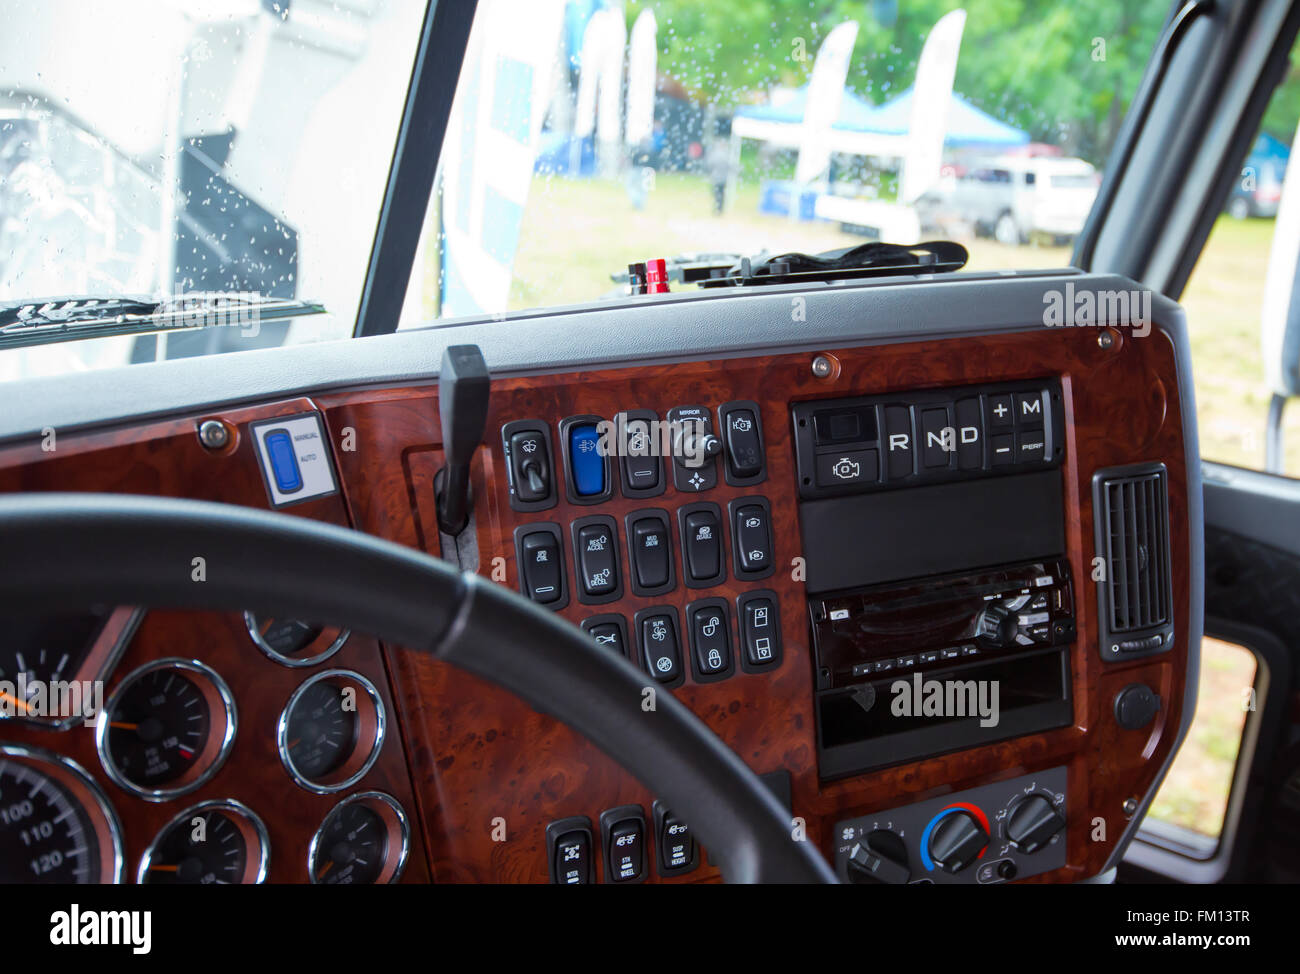 Modern ergonomic and stylish dashboard of heavy semi truck with lots of equipment, indicators, buttons, and other - Stock Image